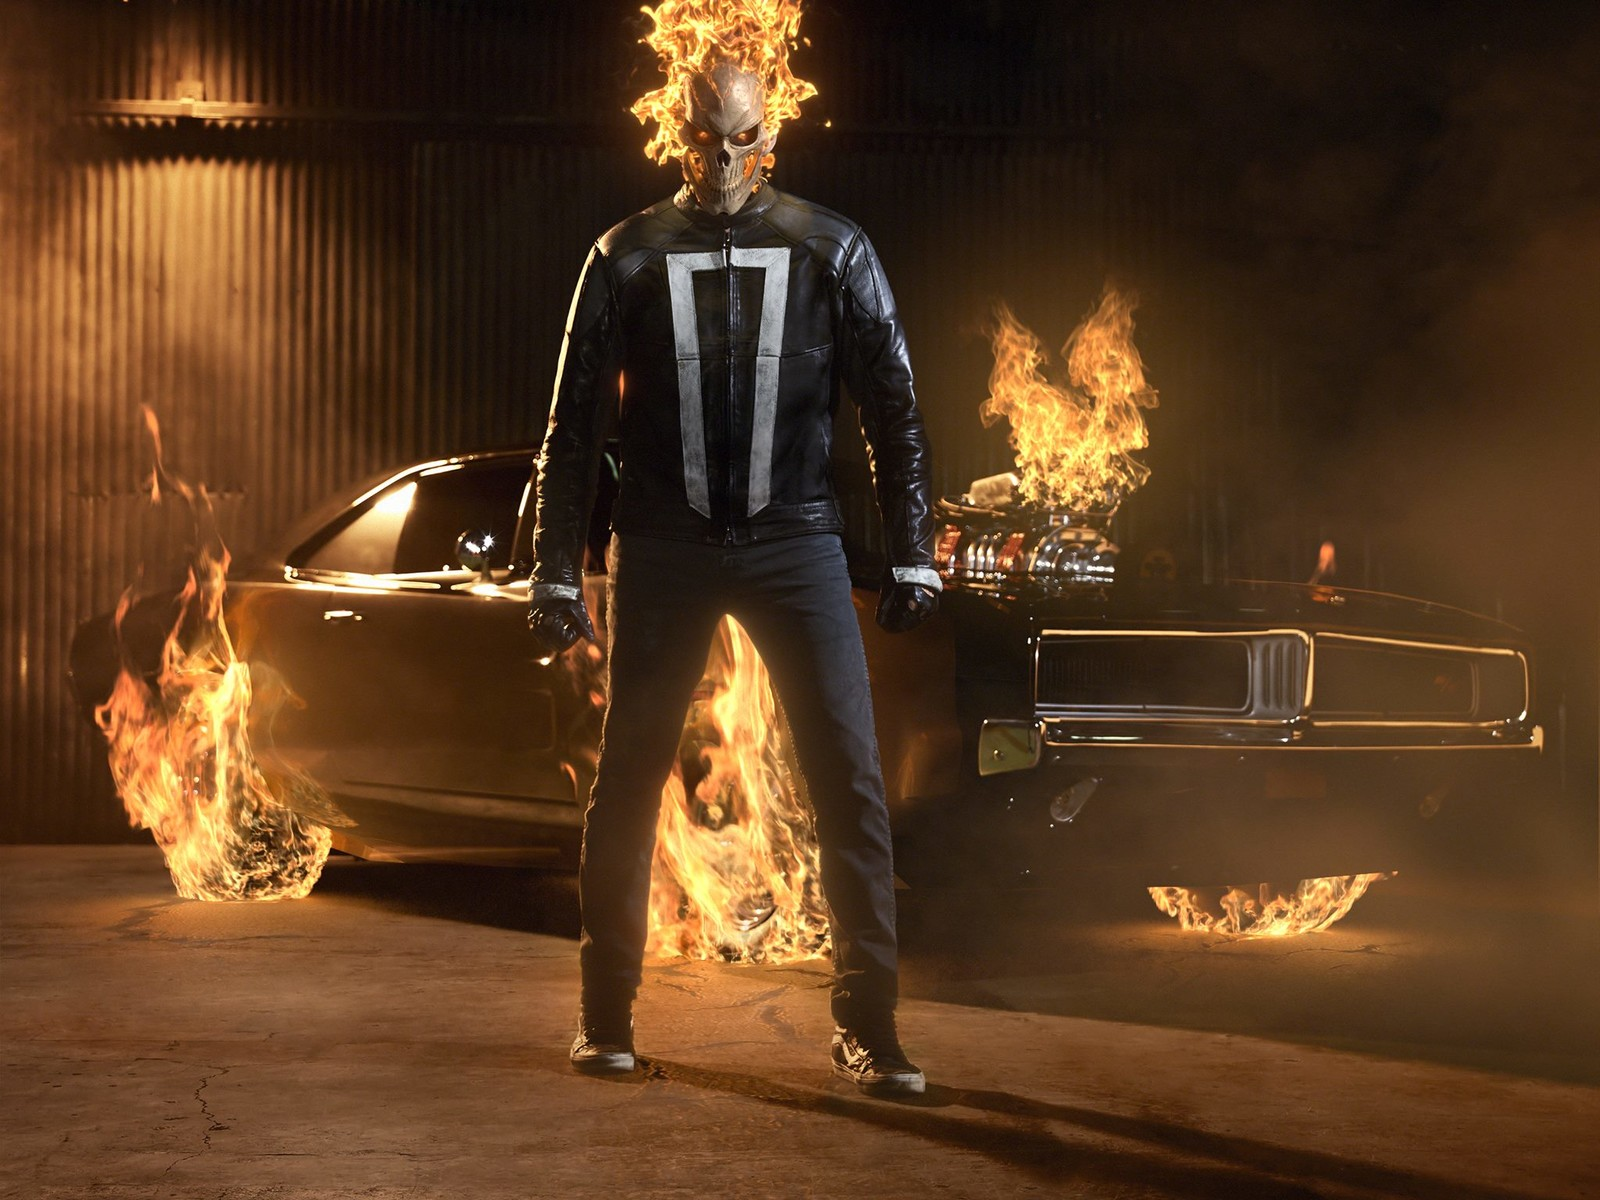 Original Ghost Rider image